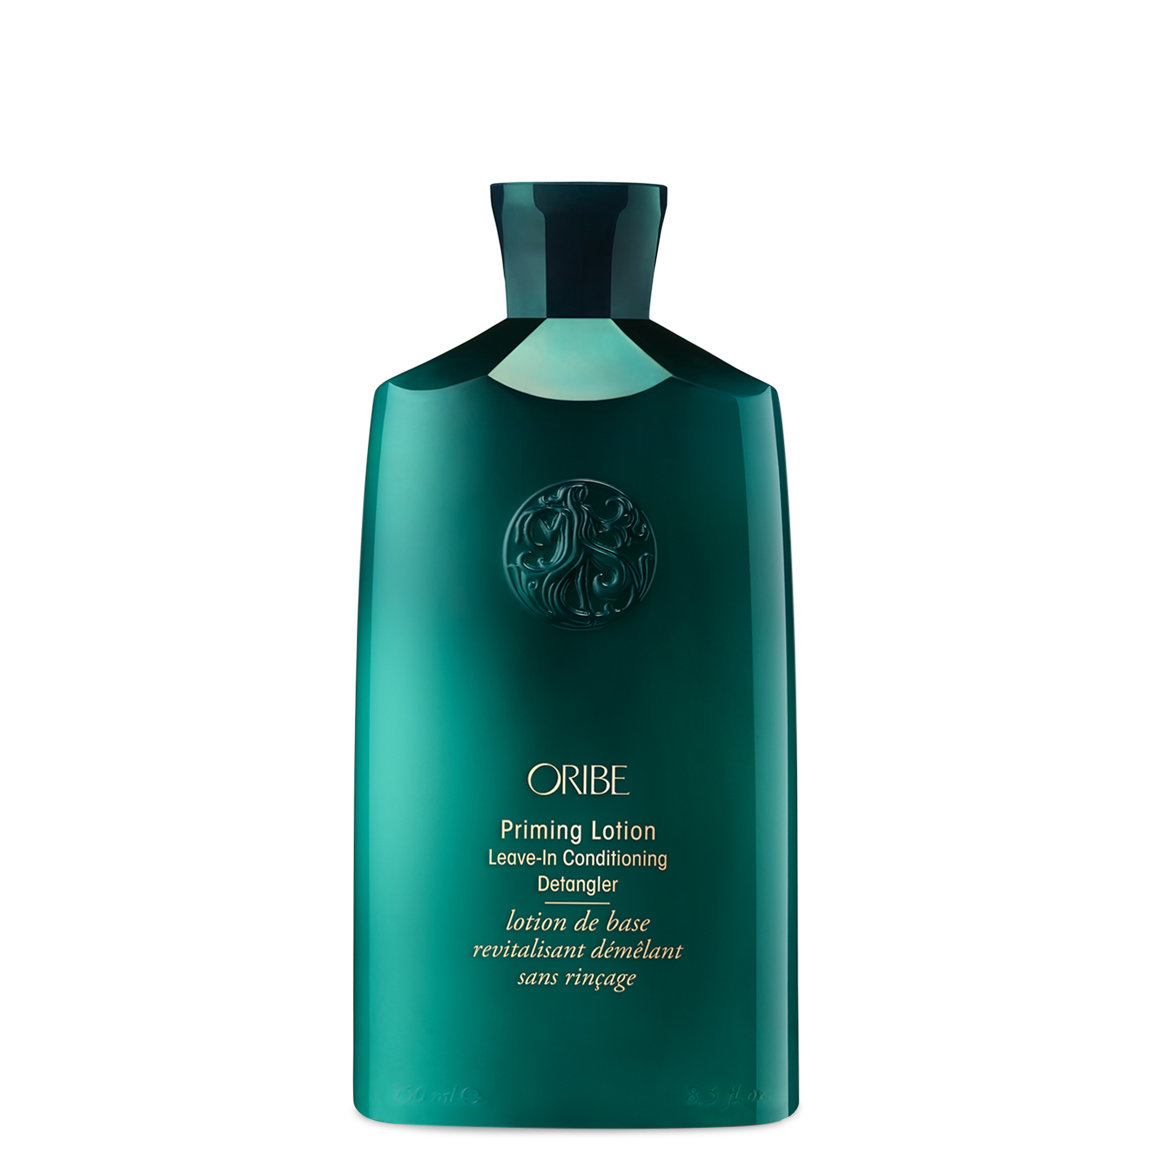 Oribe Priming Lotion Leave-In Conditioning Detangler product swatch.